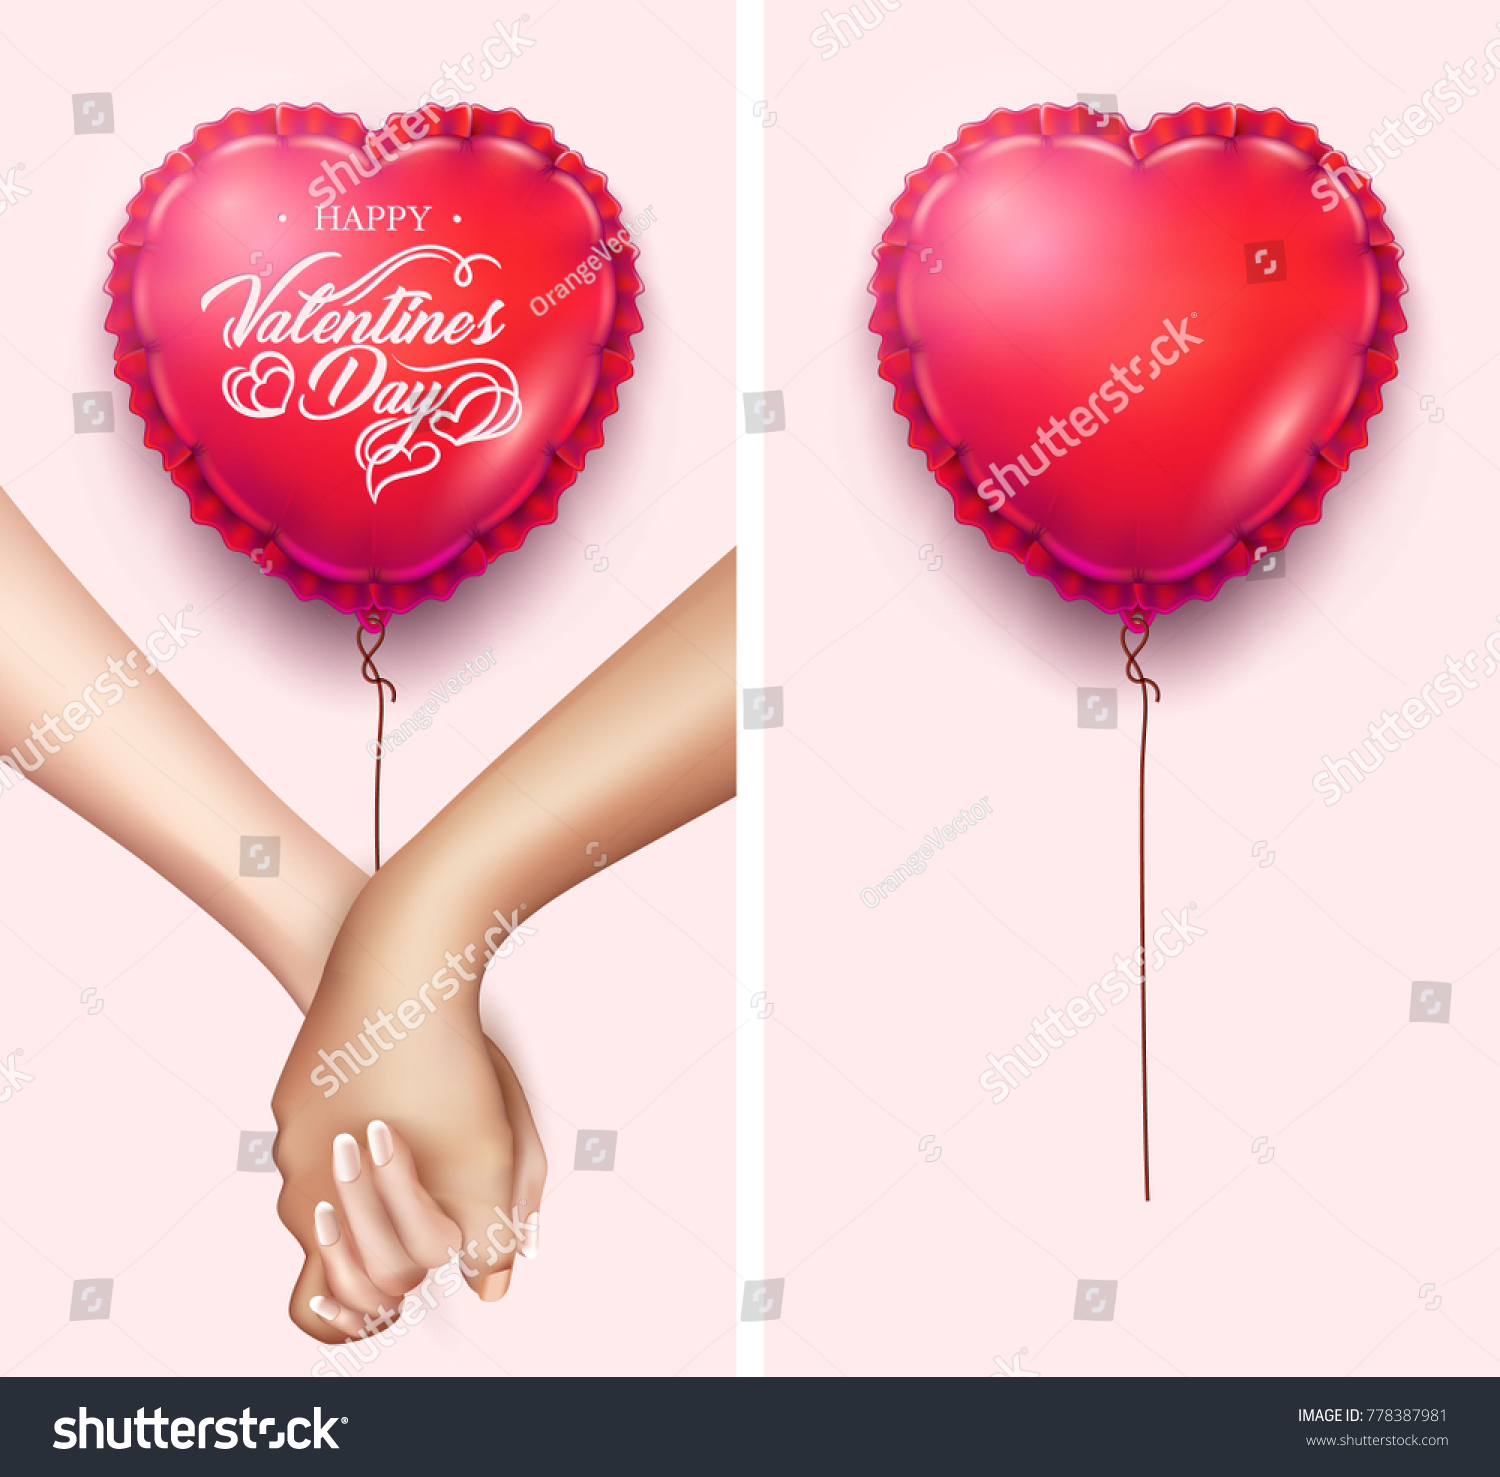 Realistic Holding Hands Heart Shape Air Stock Vector 778387981 ...